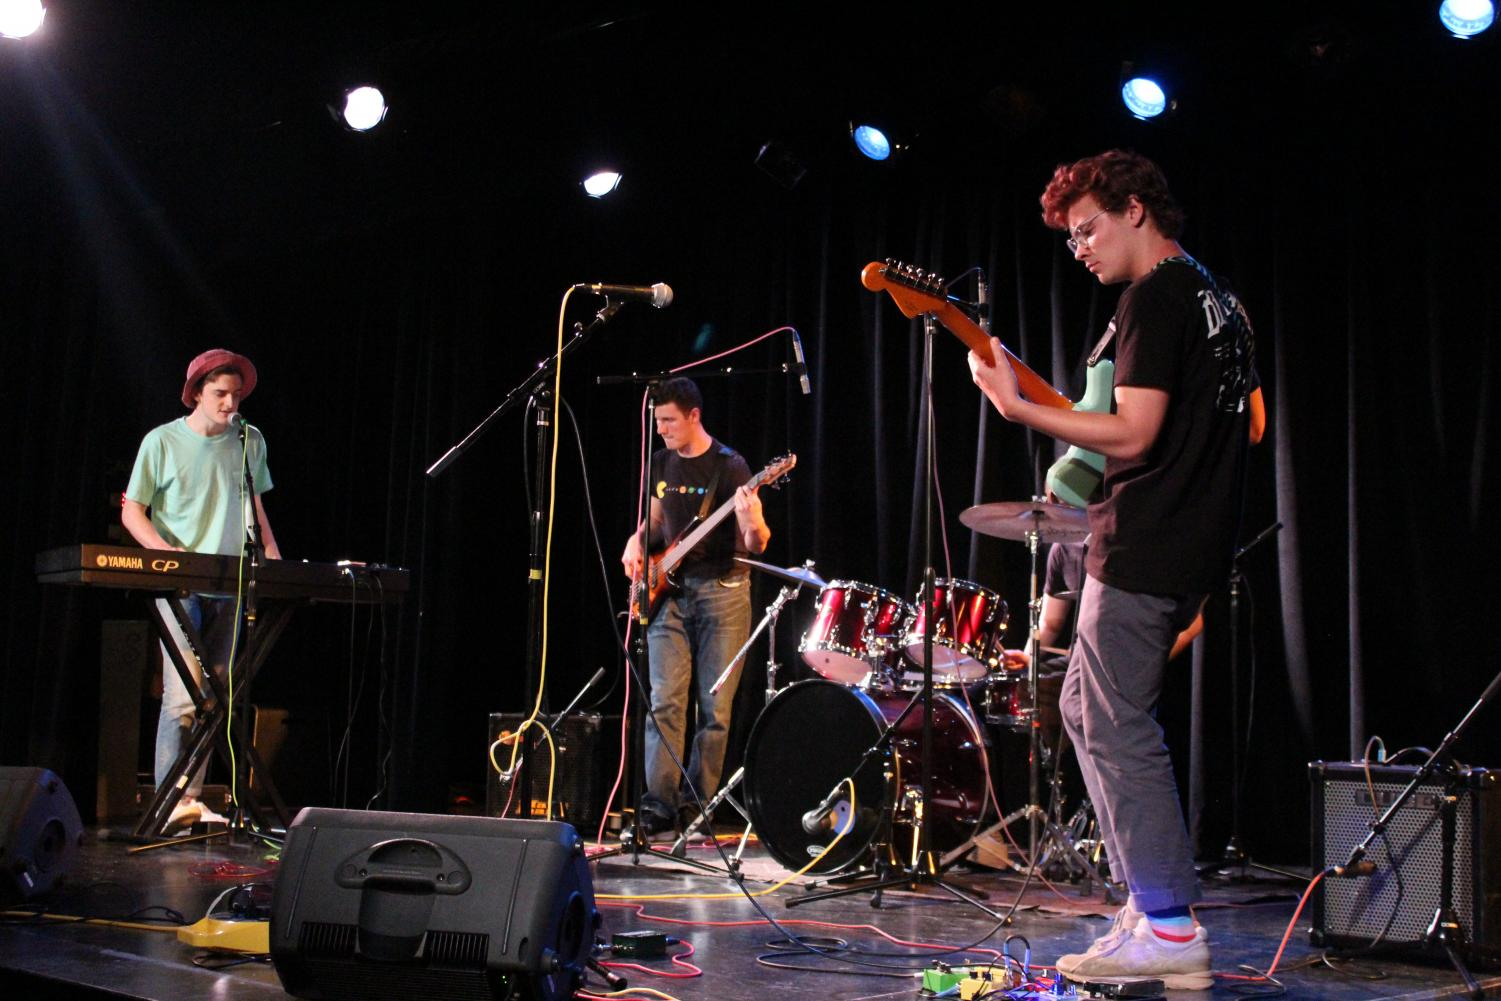 Seniors Sam DuBose, Henry Cassel, Grant Fishman (not pictured) and Michael Harper perform on stage for Lab's 'Electric Gordyland' performance. A student-led show, it serves as the culminating project of Mr. Francisco Dean's